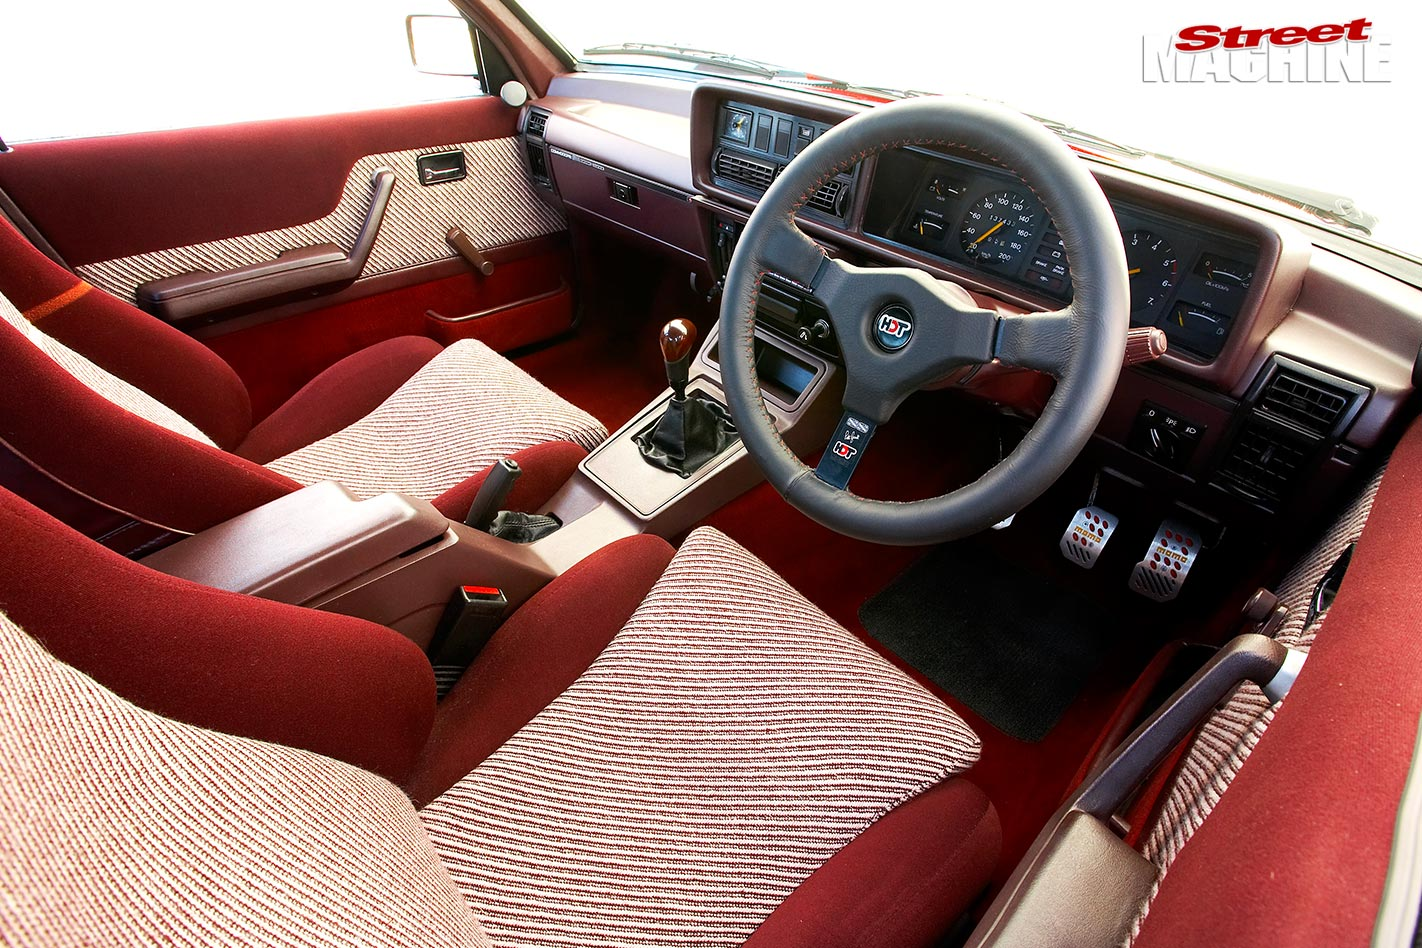 Holden VH Commodore SS Group 3 interior